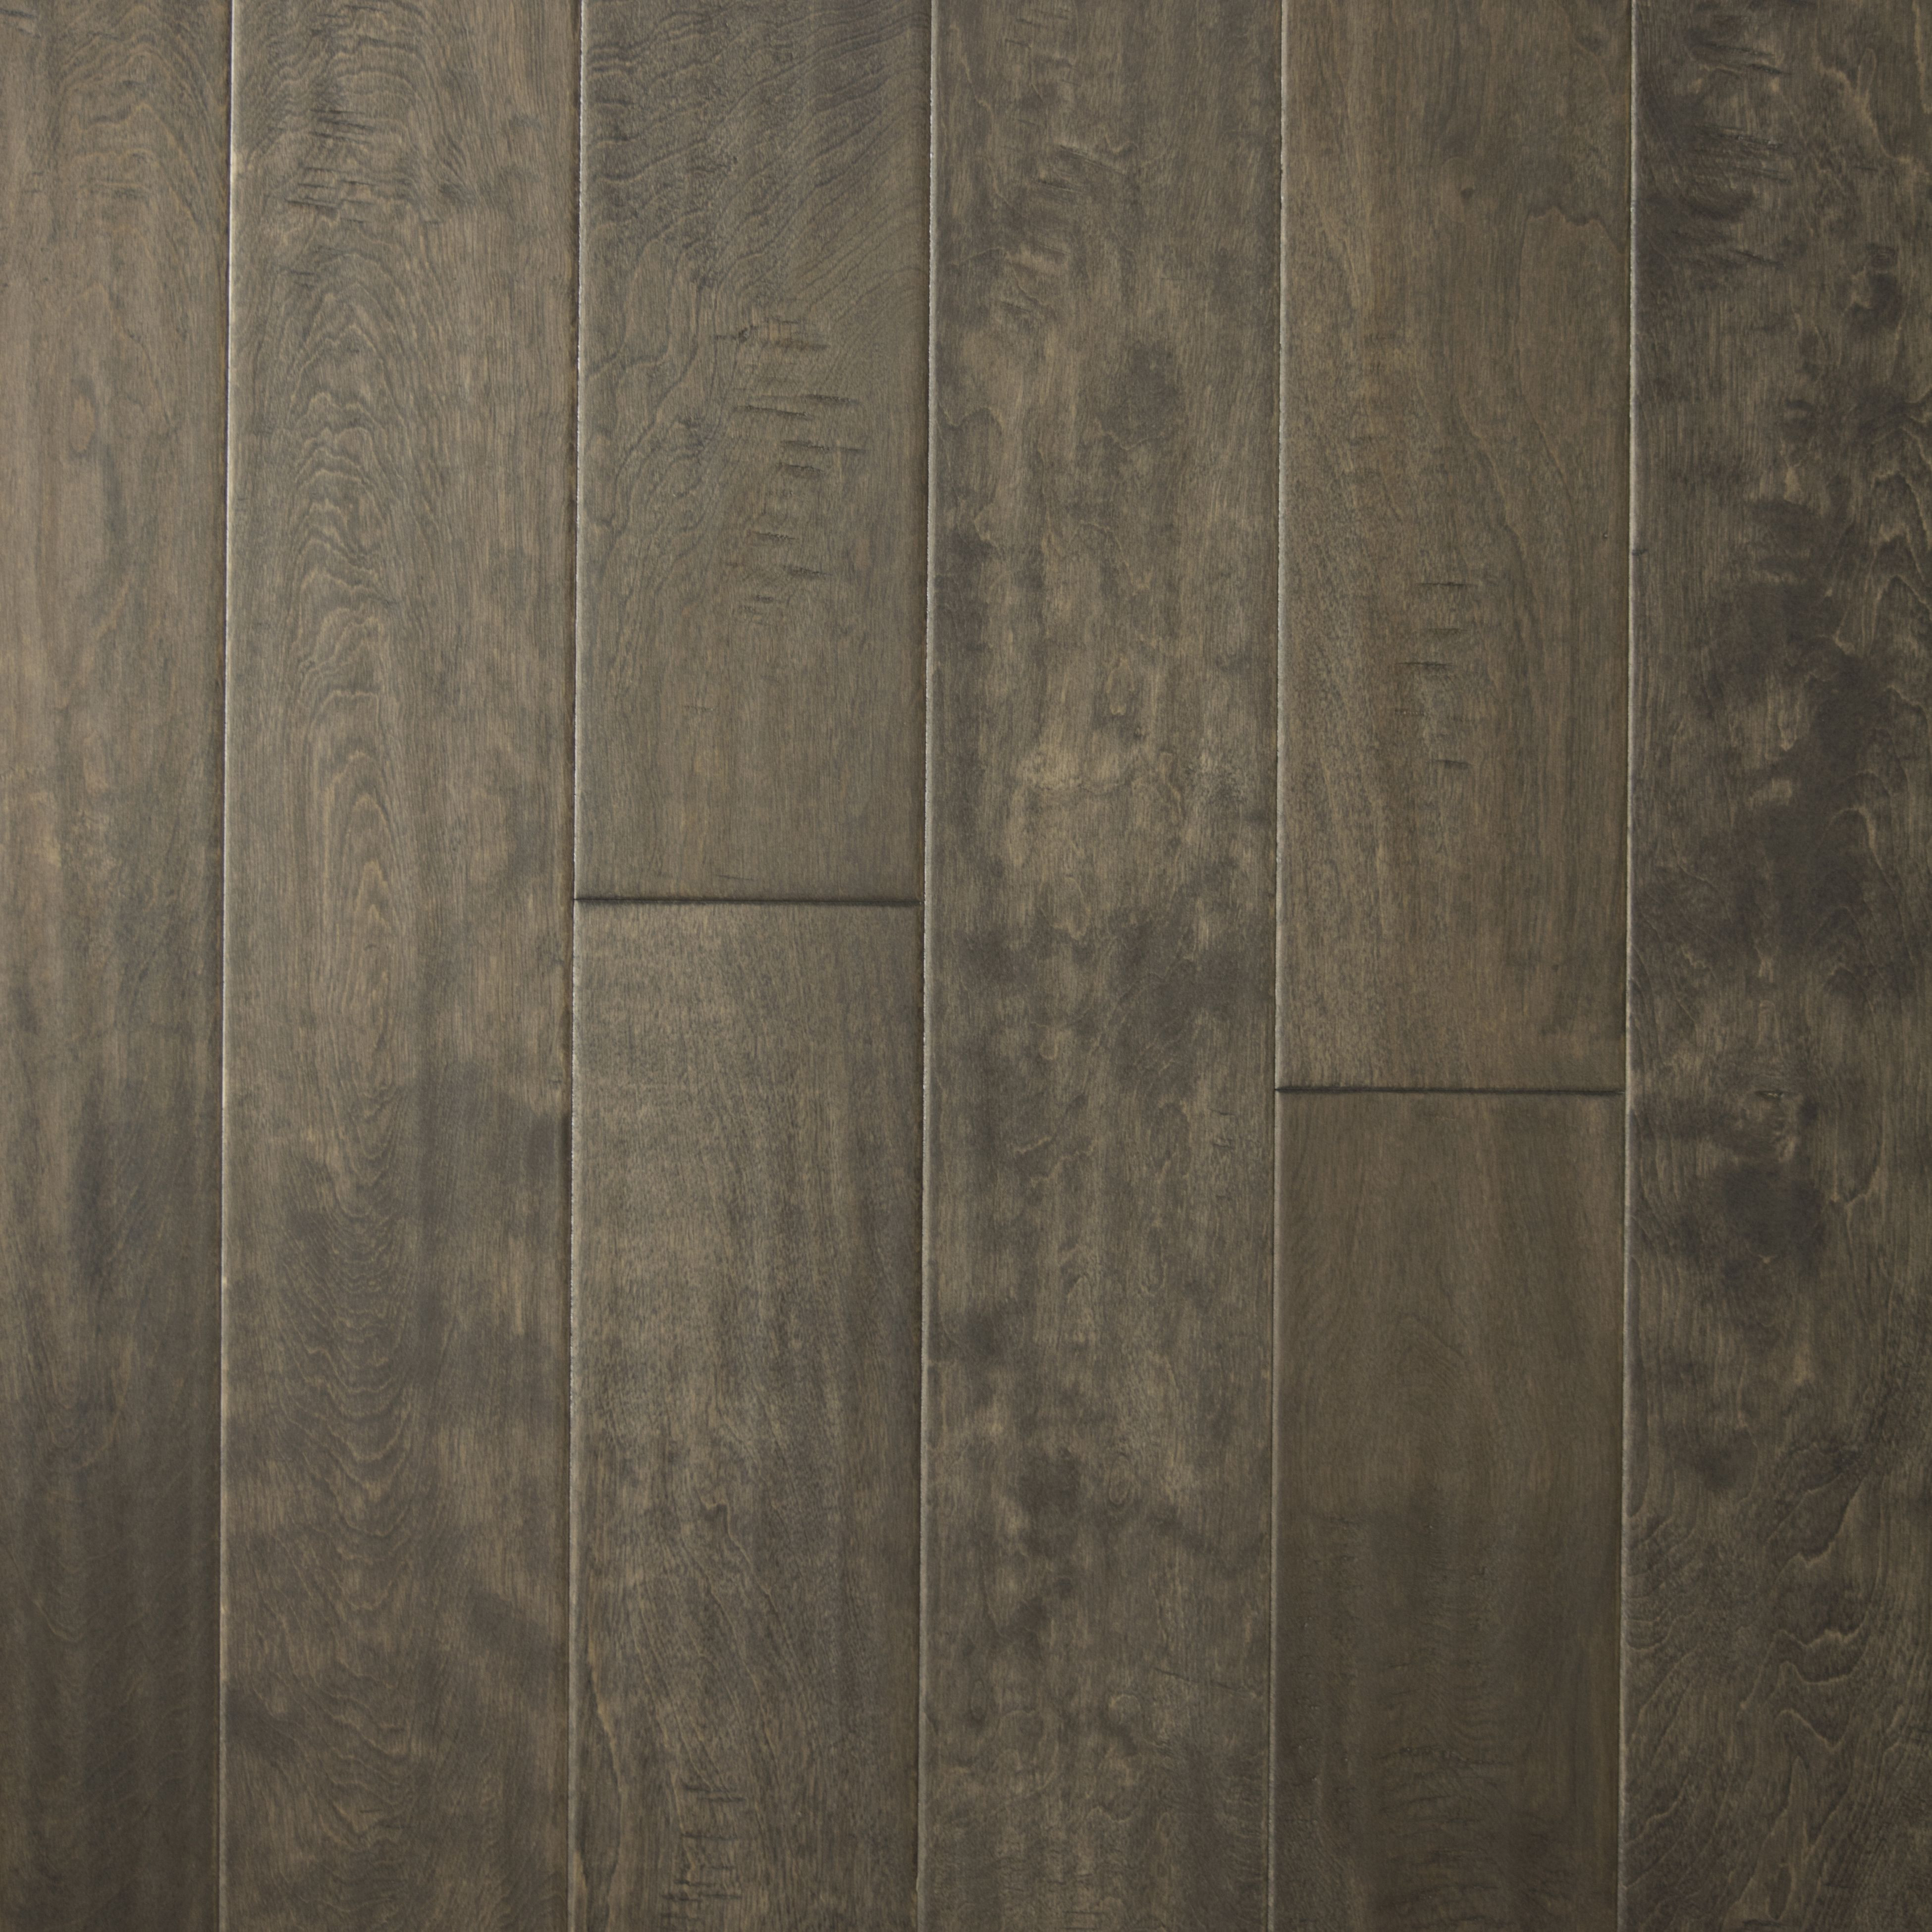 bruce hickory hardwood flooring reviews of hand scraped laminate wood flooring new wood flooring free samples within hand scraped laminate wood flooring elegant hand scraped smoke from the passion floors collection of hand